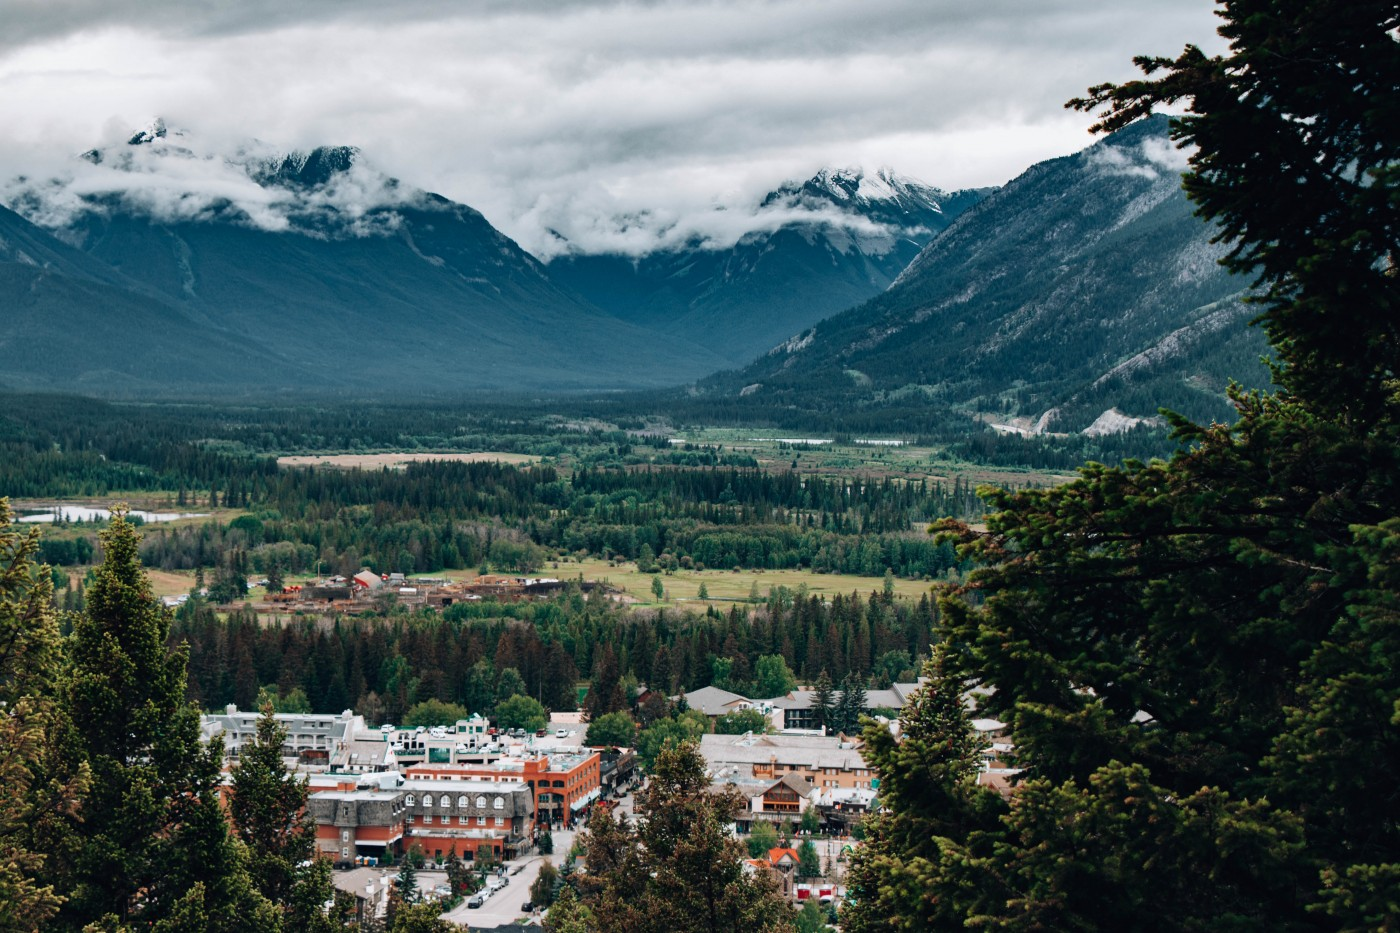 Downtown Banff   Top 10 Photography Spots in Banff National Park